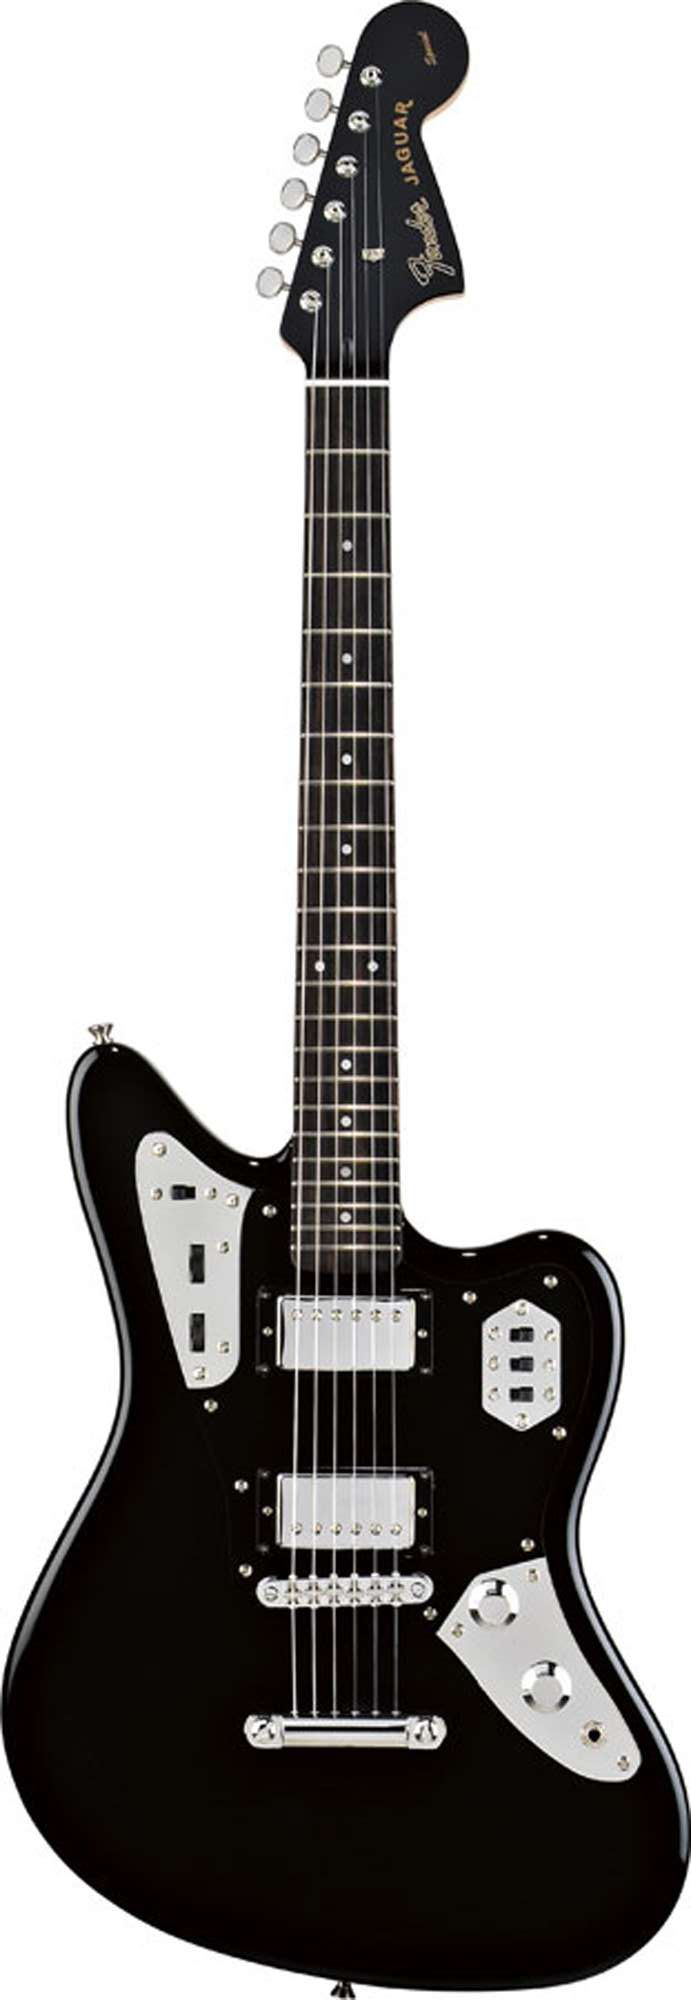 fender jaguar hh electric guitar alder body maple neck with rosewood fretboard 24 scale. Black Bedroom Furniture Sets. Home Design Ideas